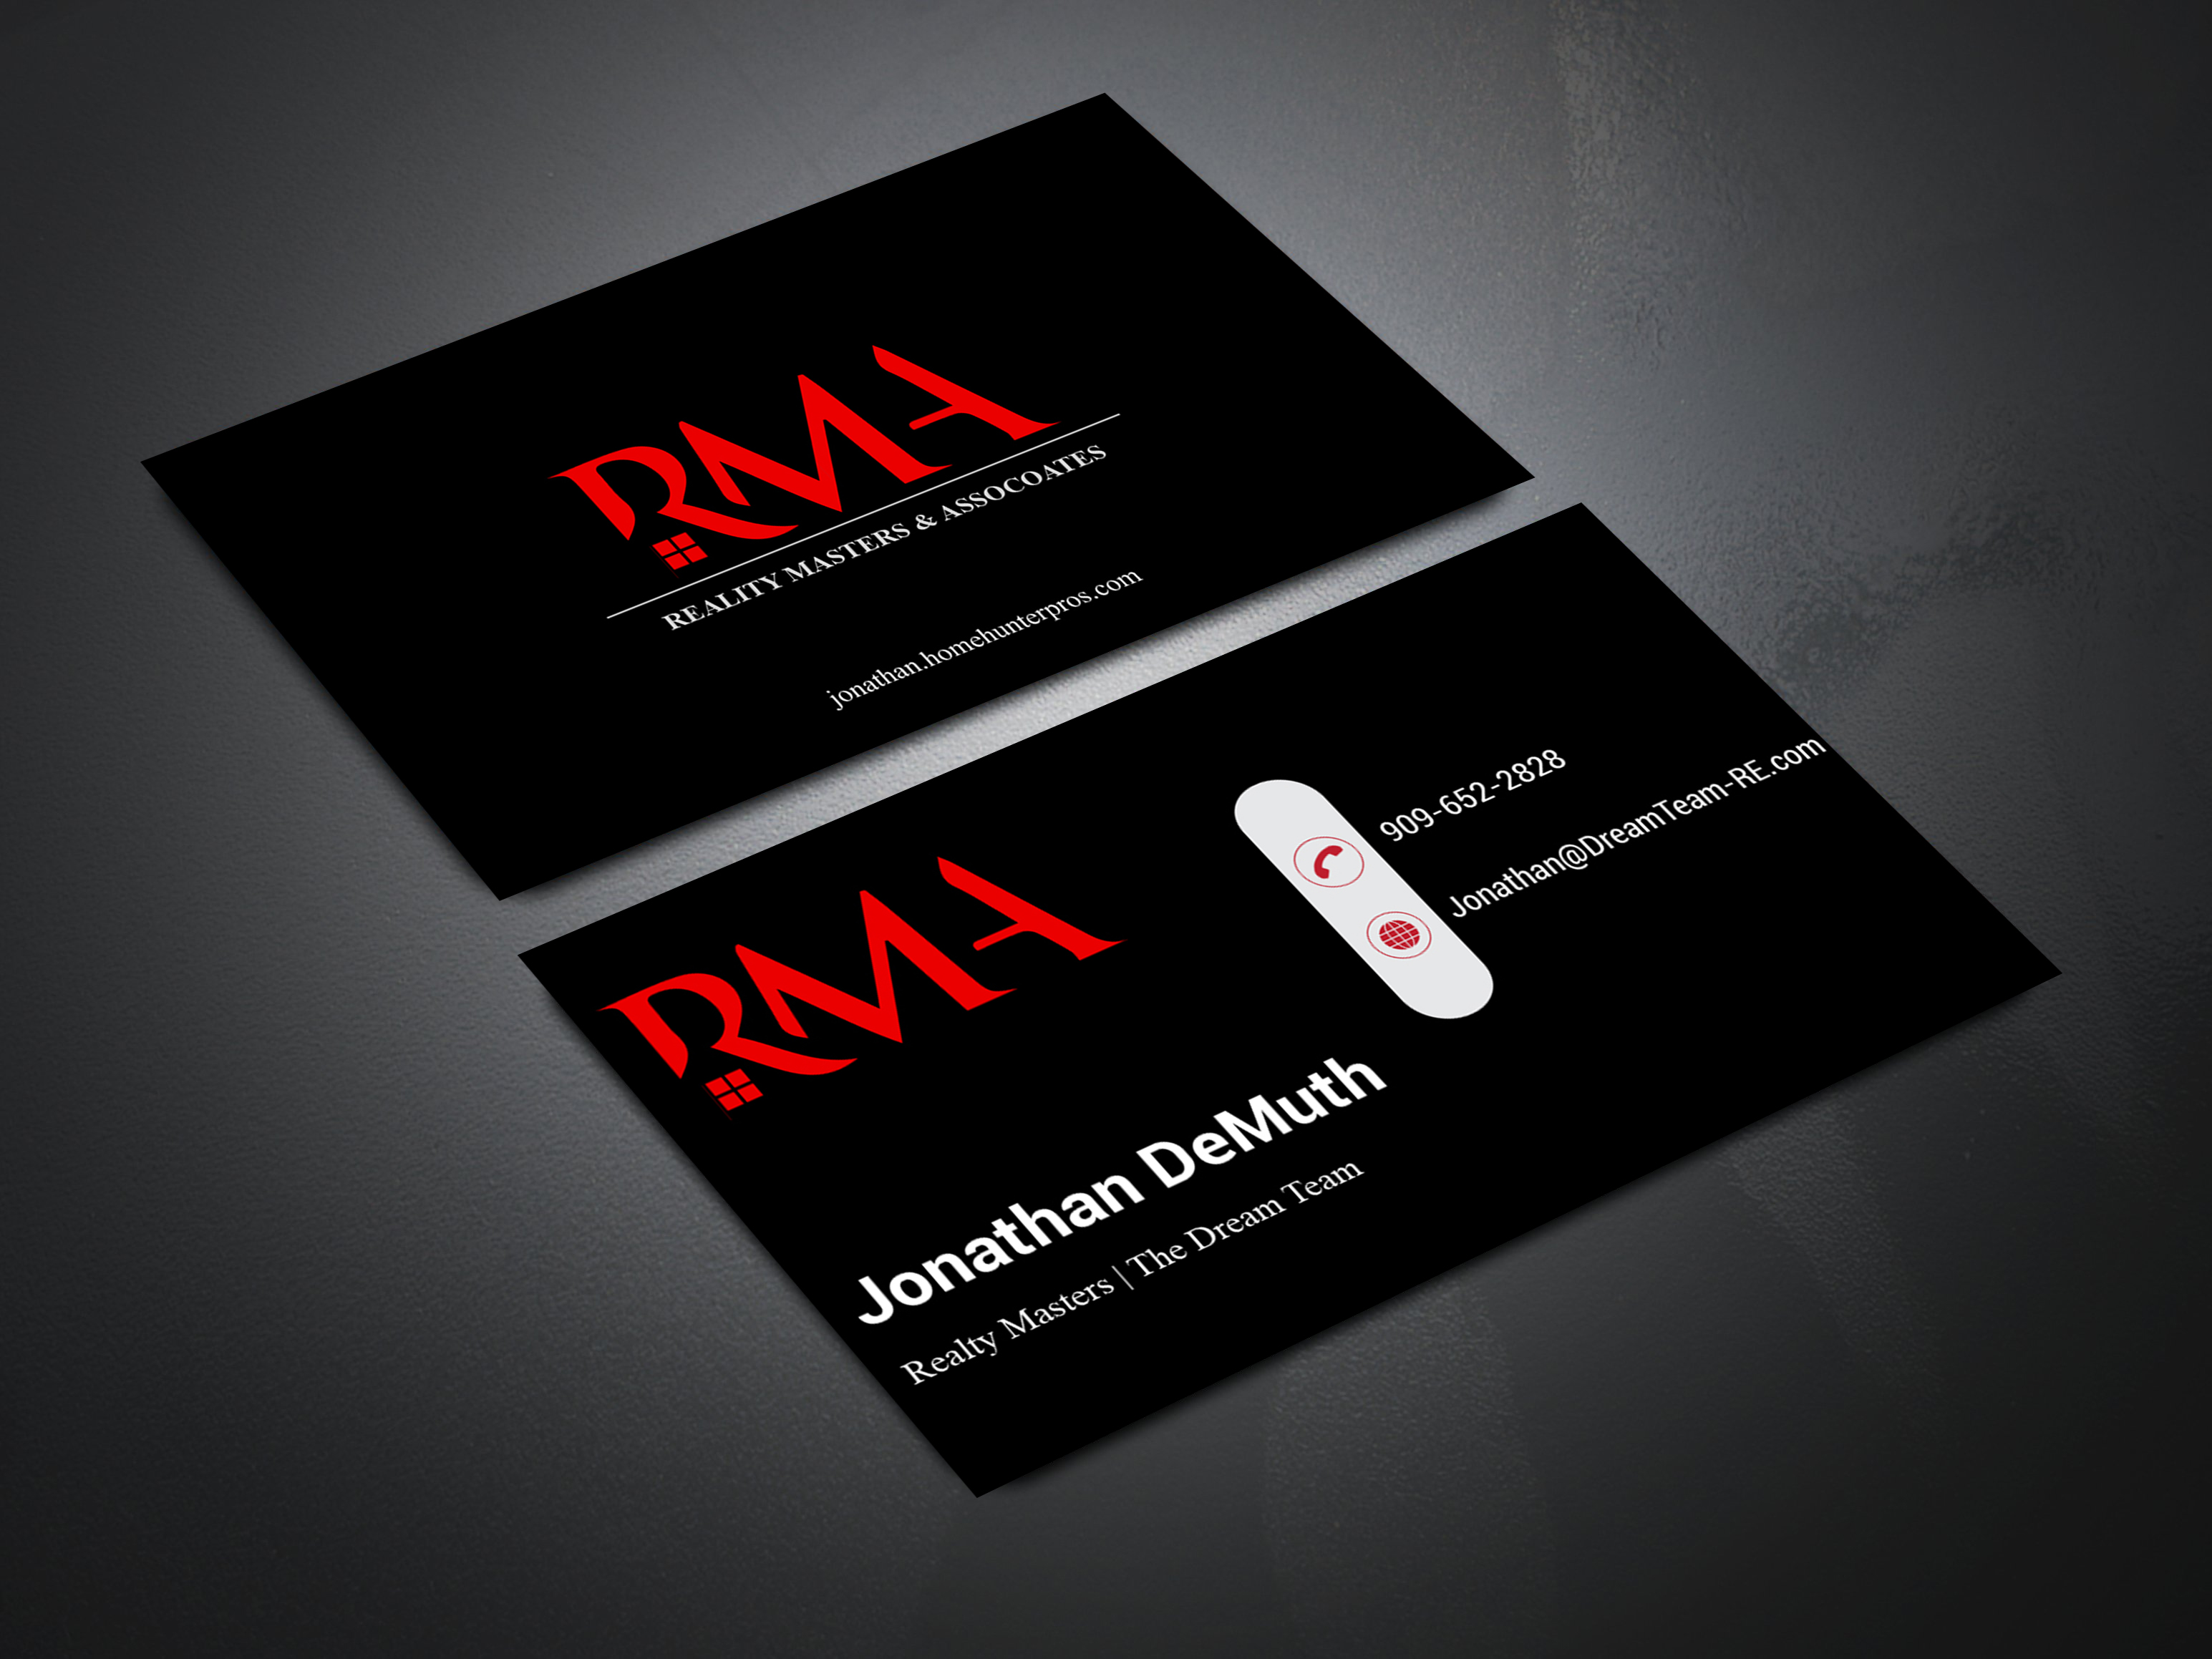 I will design an Authentic formal and Professional Business card